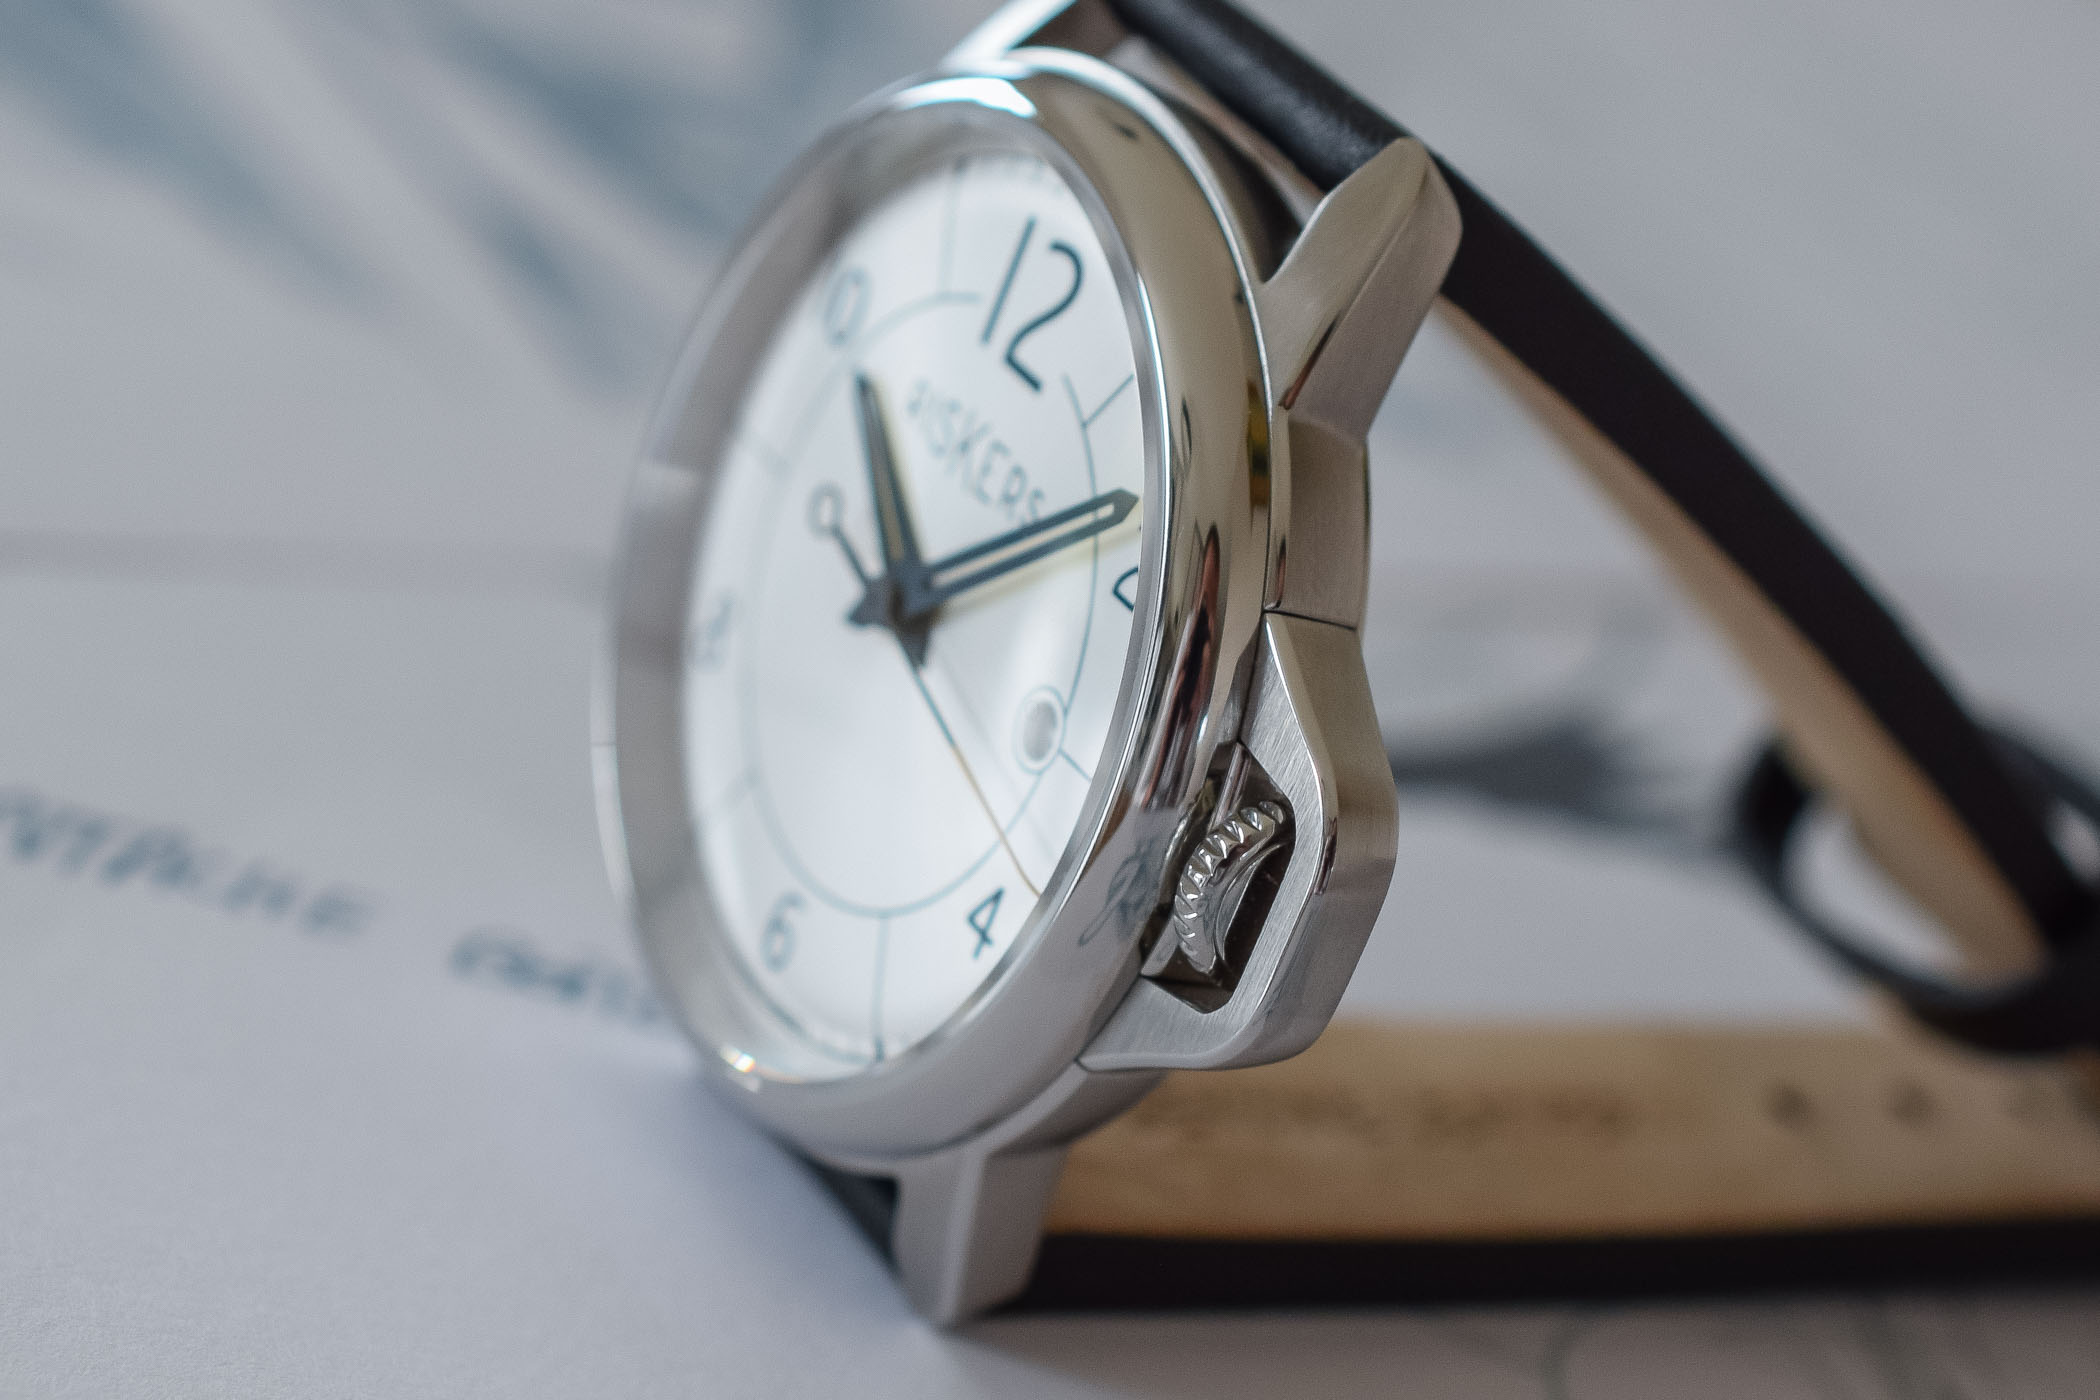 Riskers Watches Prolog I and Chapter I - Value Proposition Kickstarter